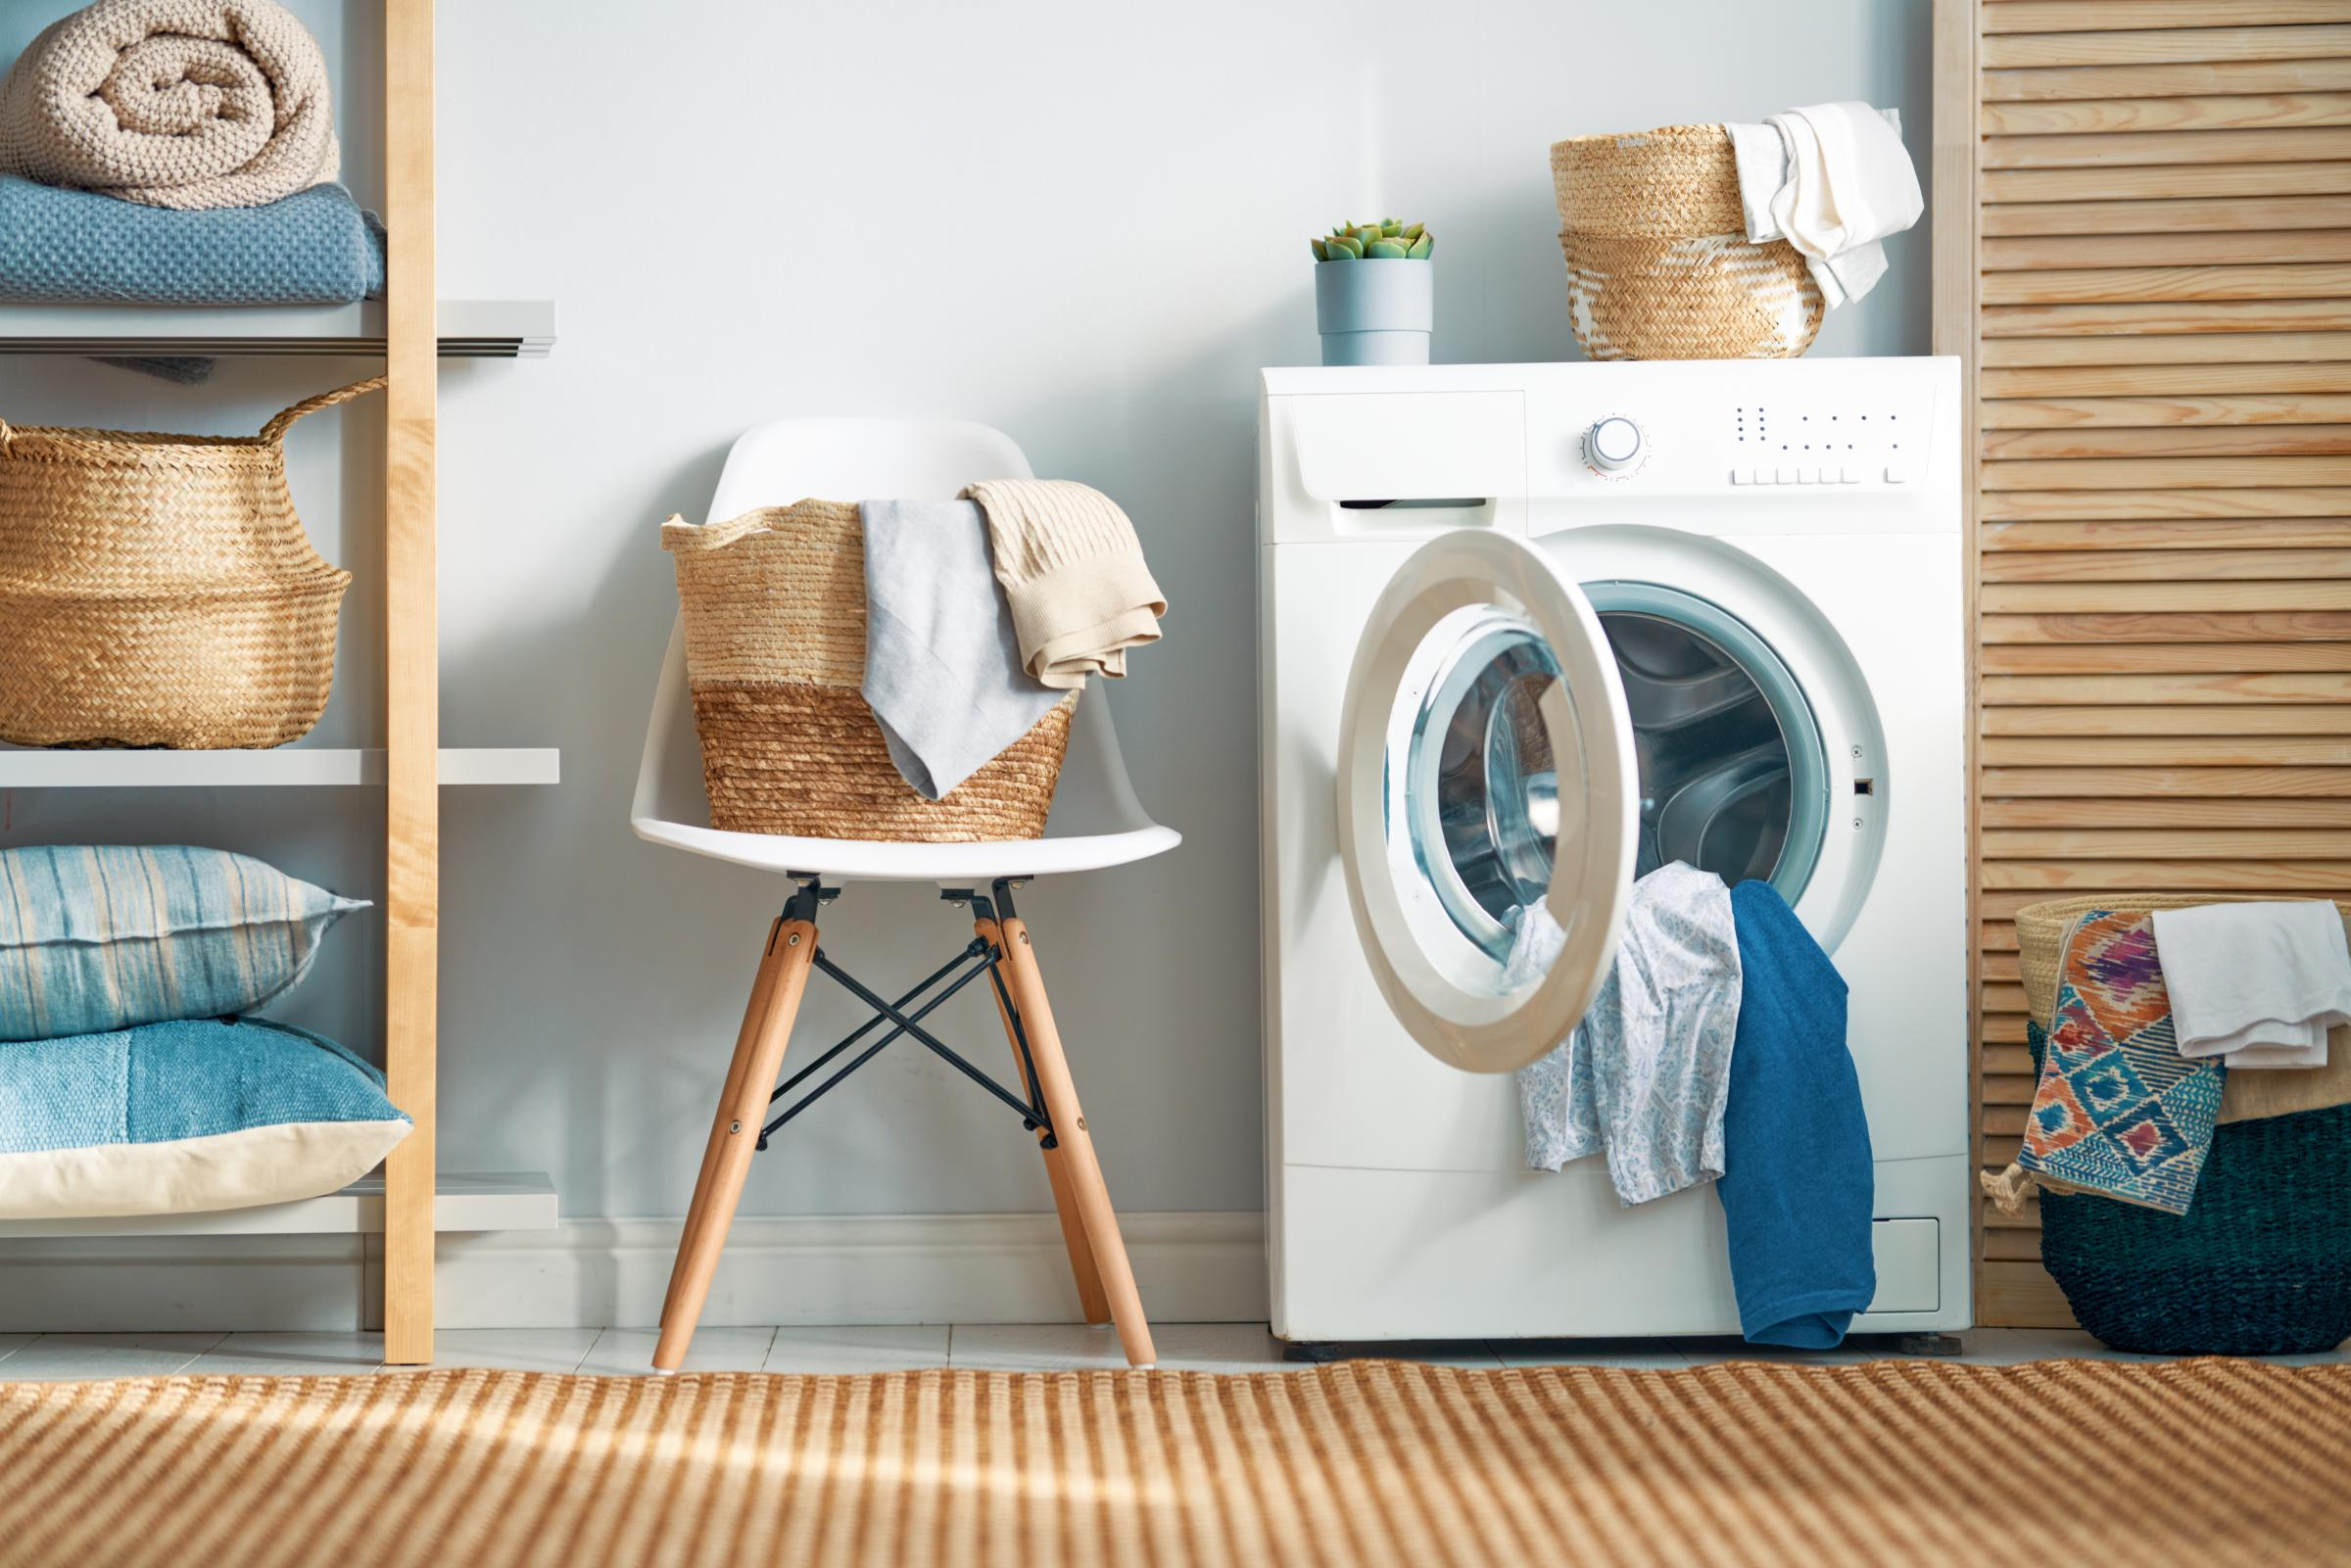 MORE WASHING: Brits are cleaning more as the pandemic continues